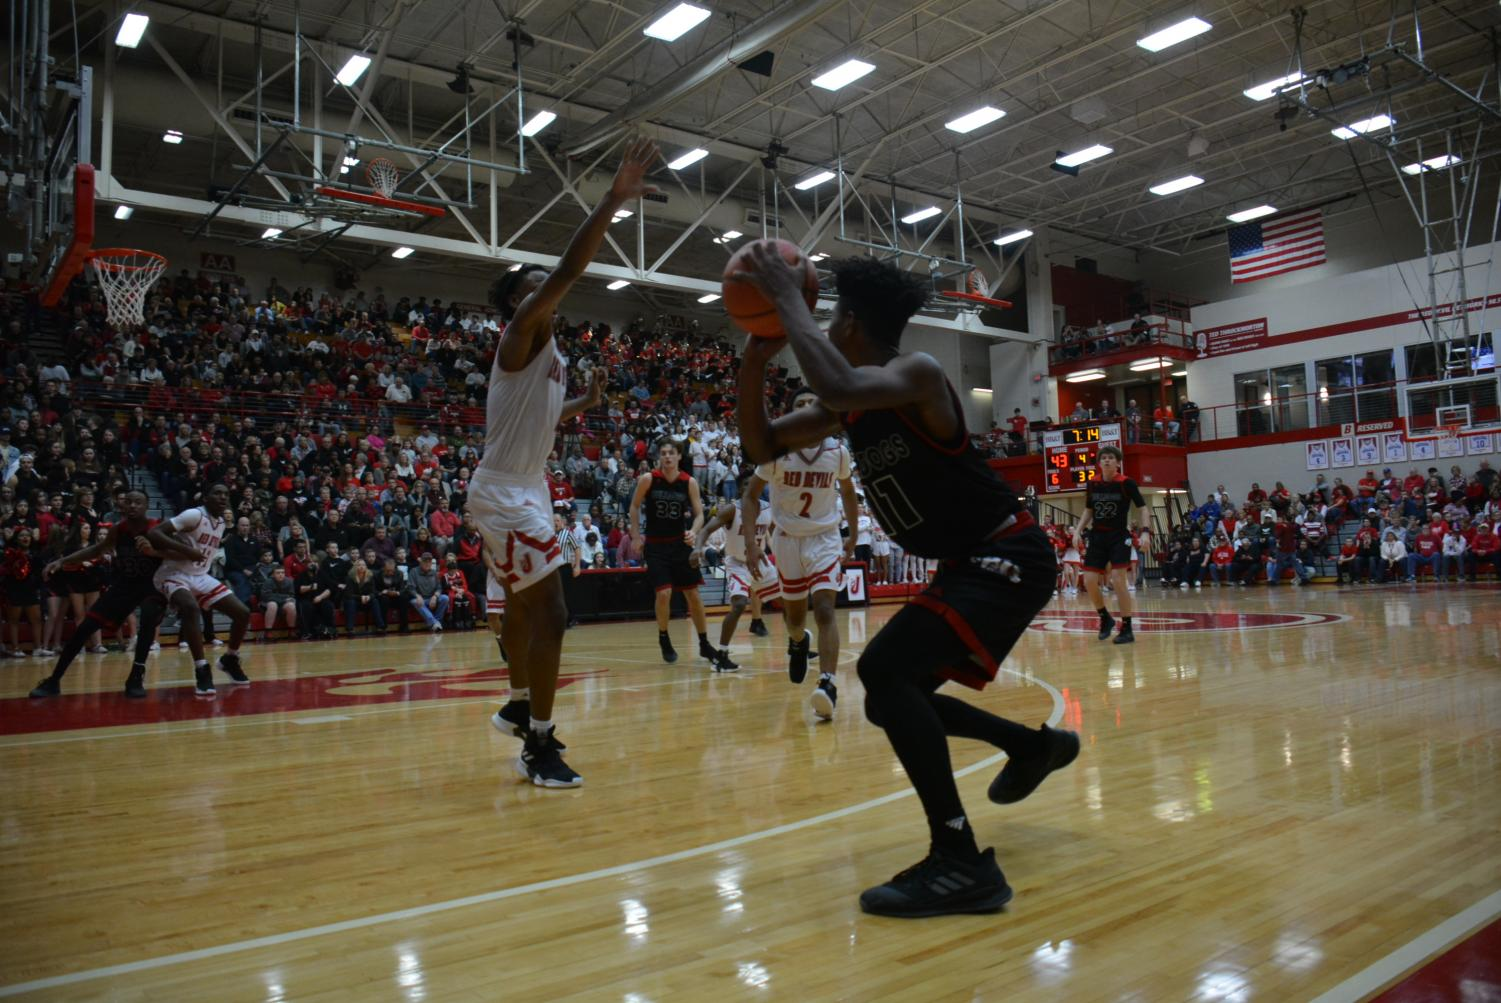 Senior Derrick Stevenson fakes out the defender.